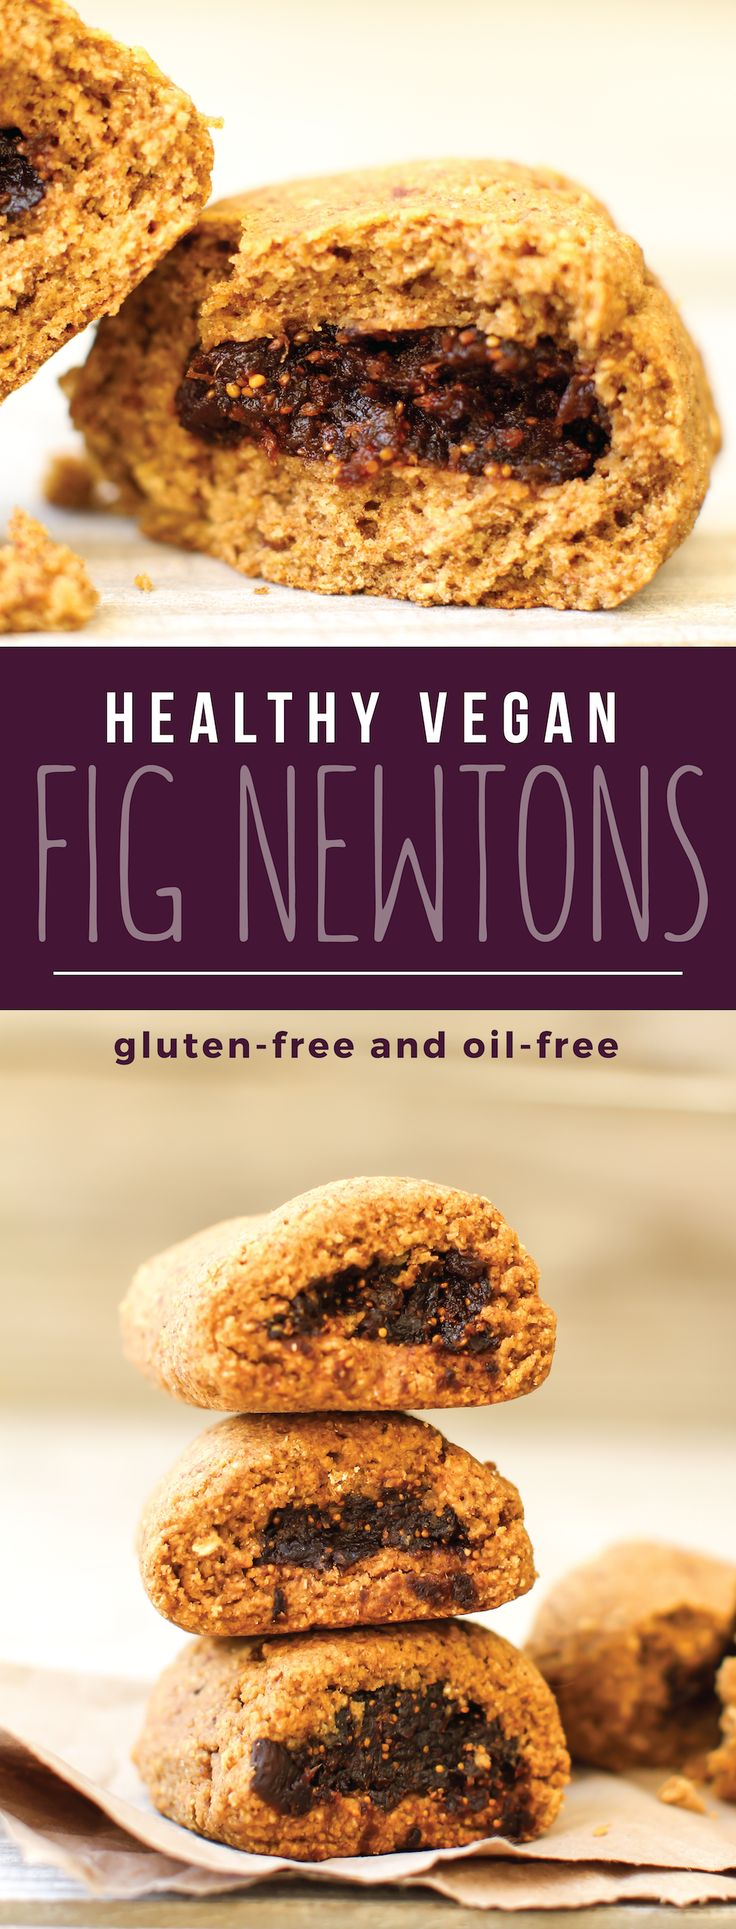 These Vegan Gluten-free Fig Newtons have all the figgy flavor, but none of the gluten or oil or sugar! Made healthy with dates, oats, and a special citrus kick...